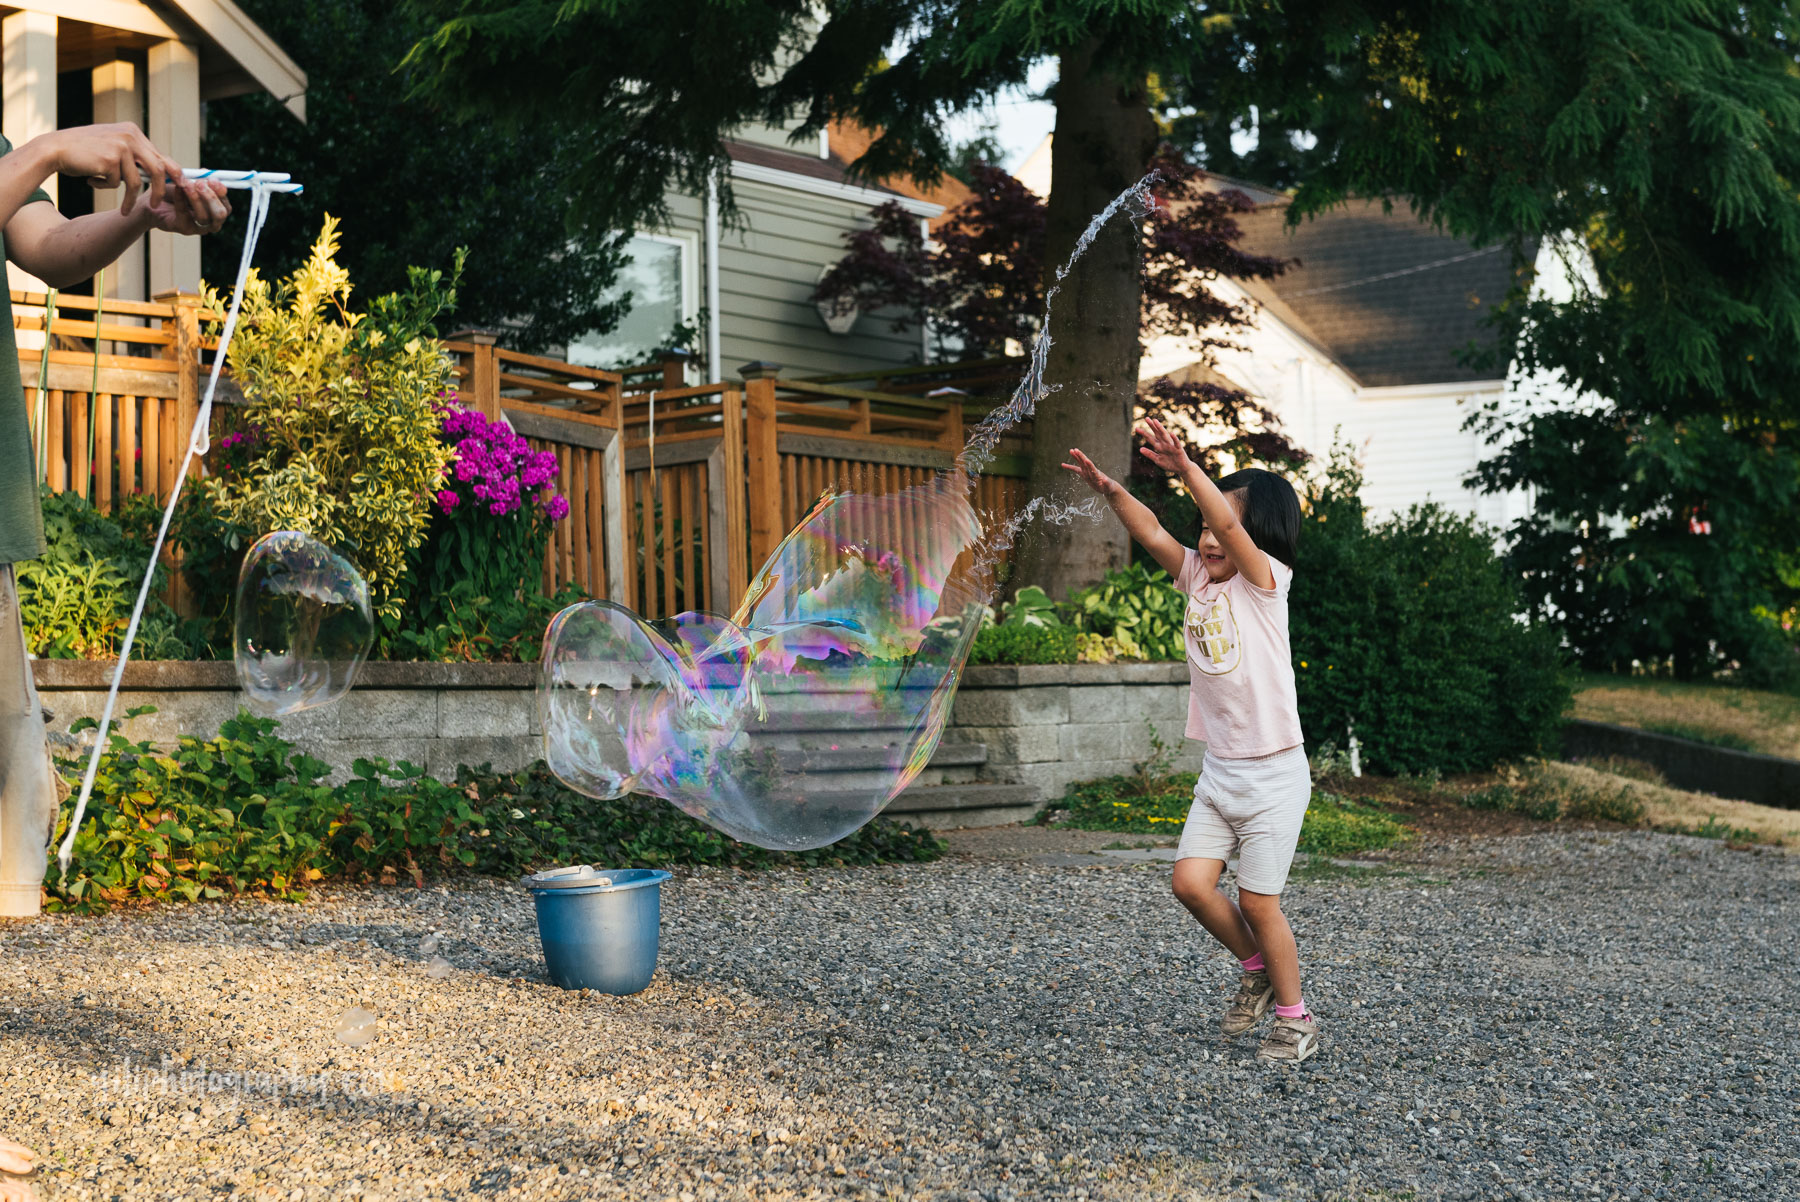 little girl with arms in air popping giant bubble